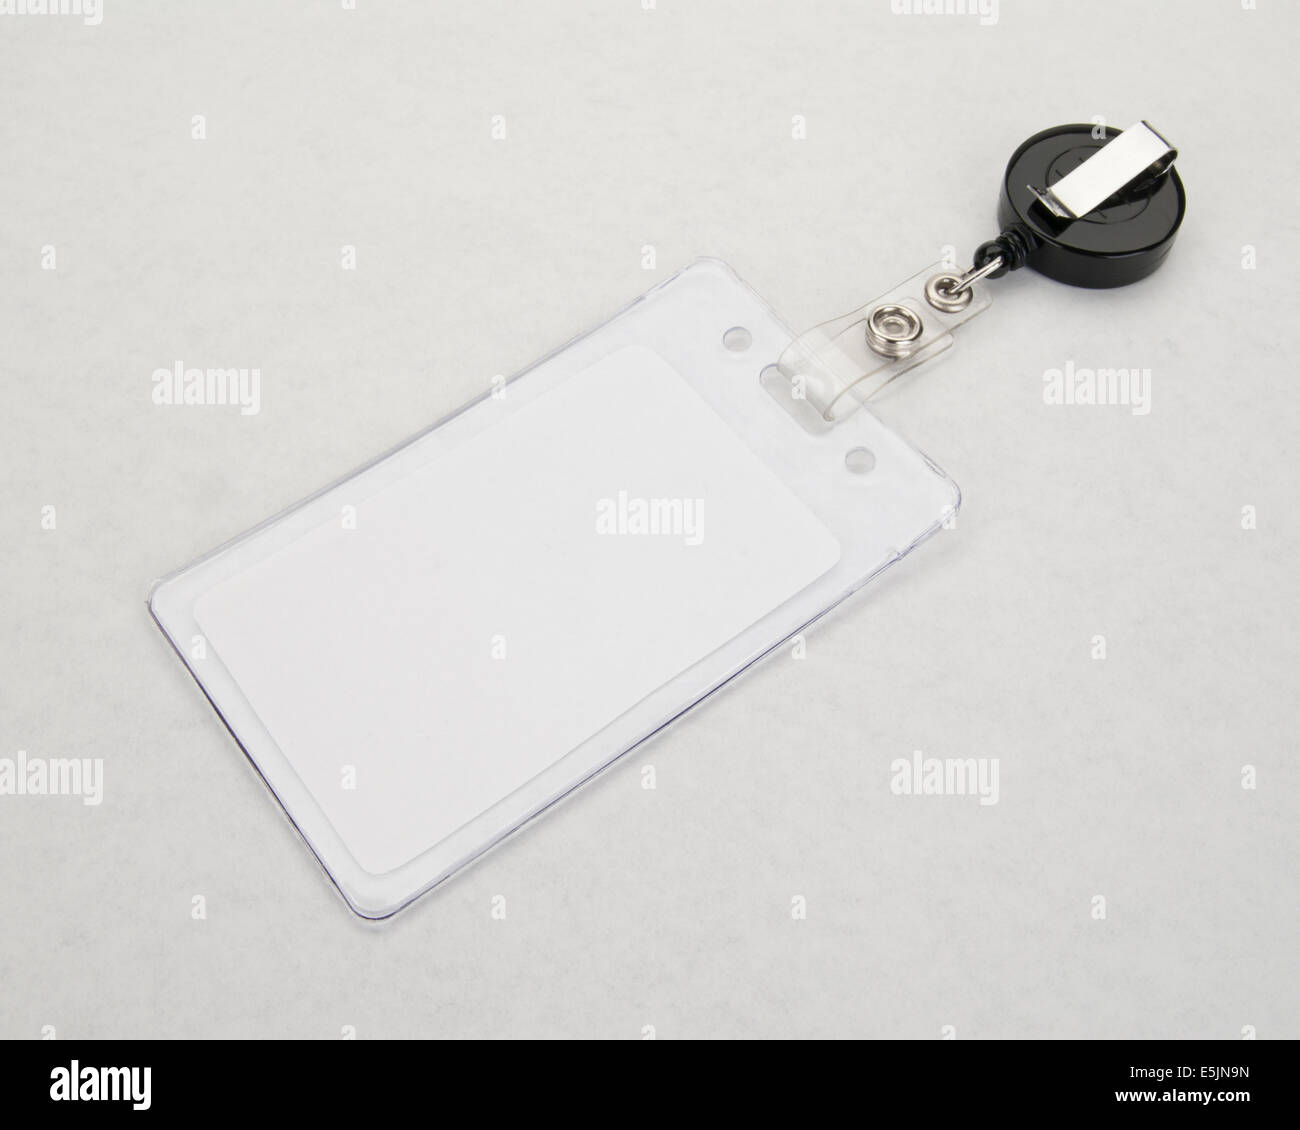 blank id badge and retractable badge holder badge in the foreground